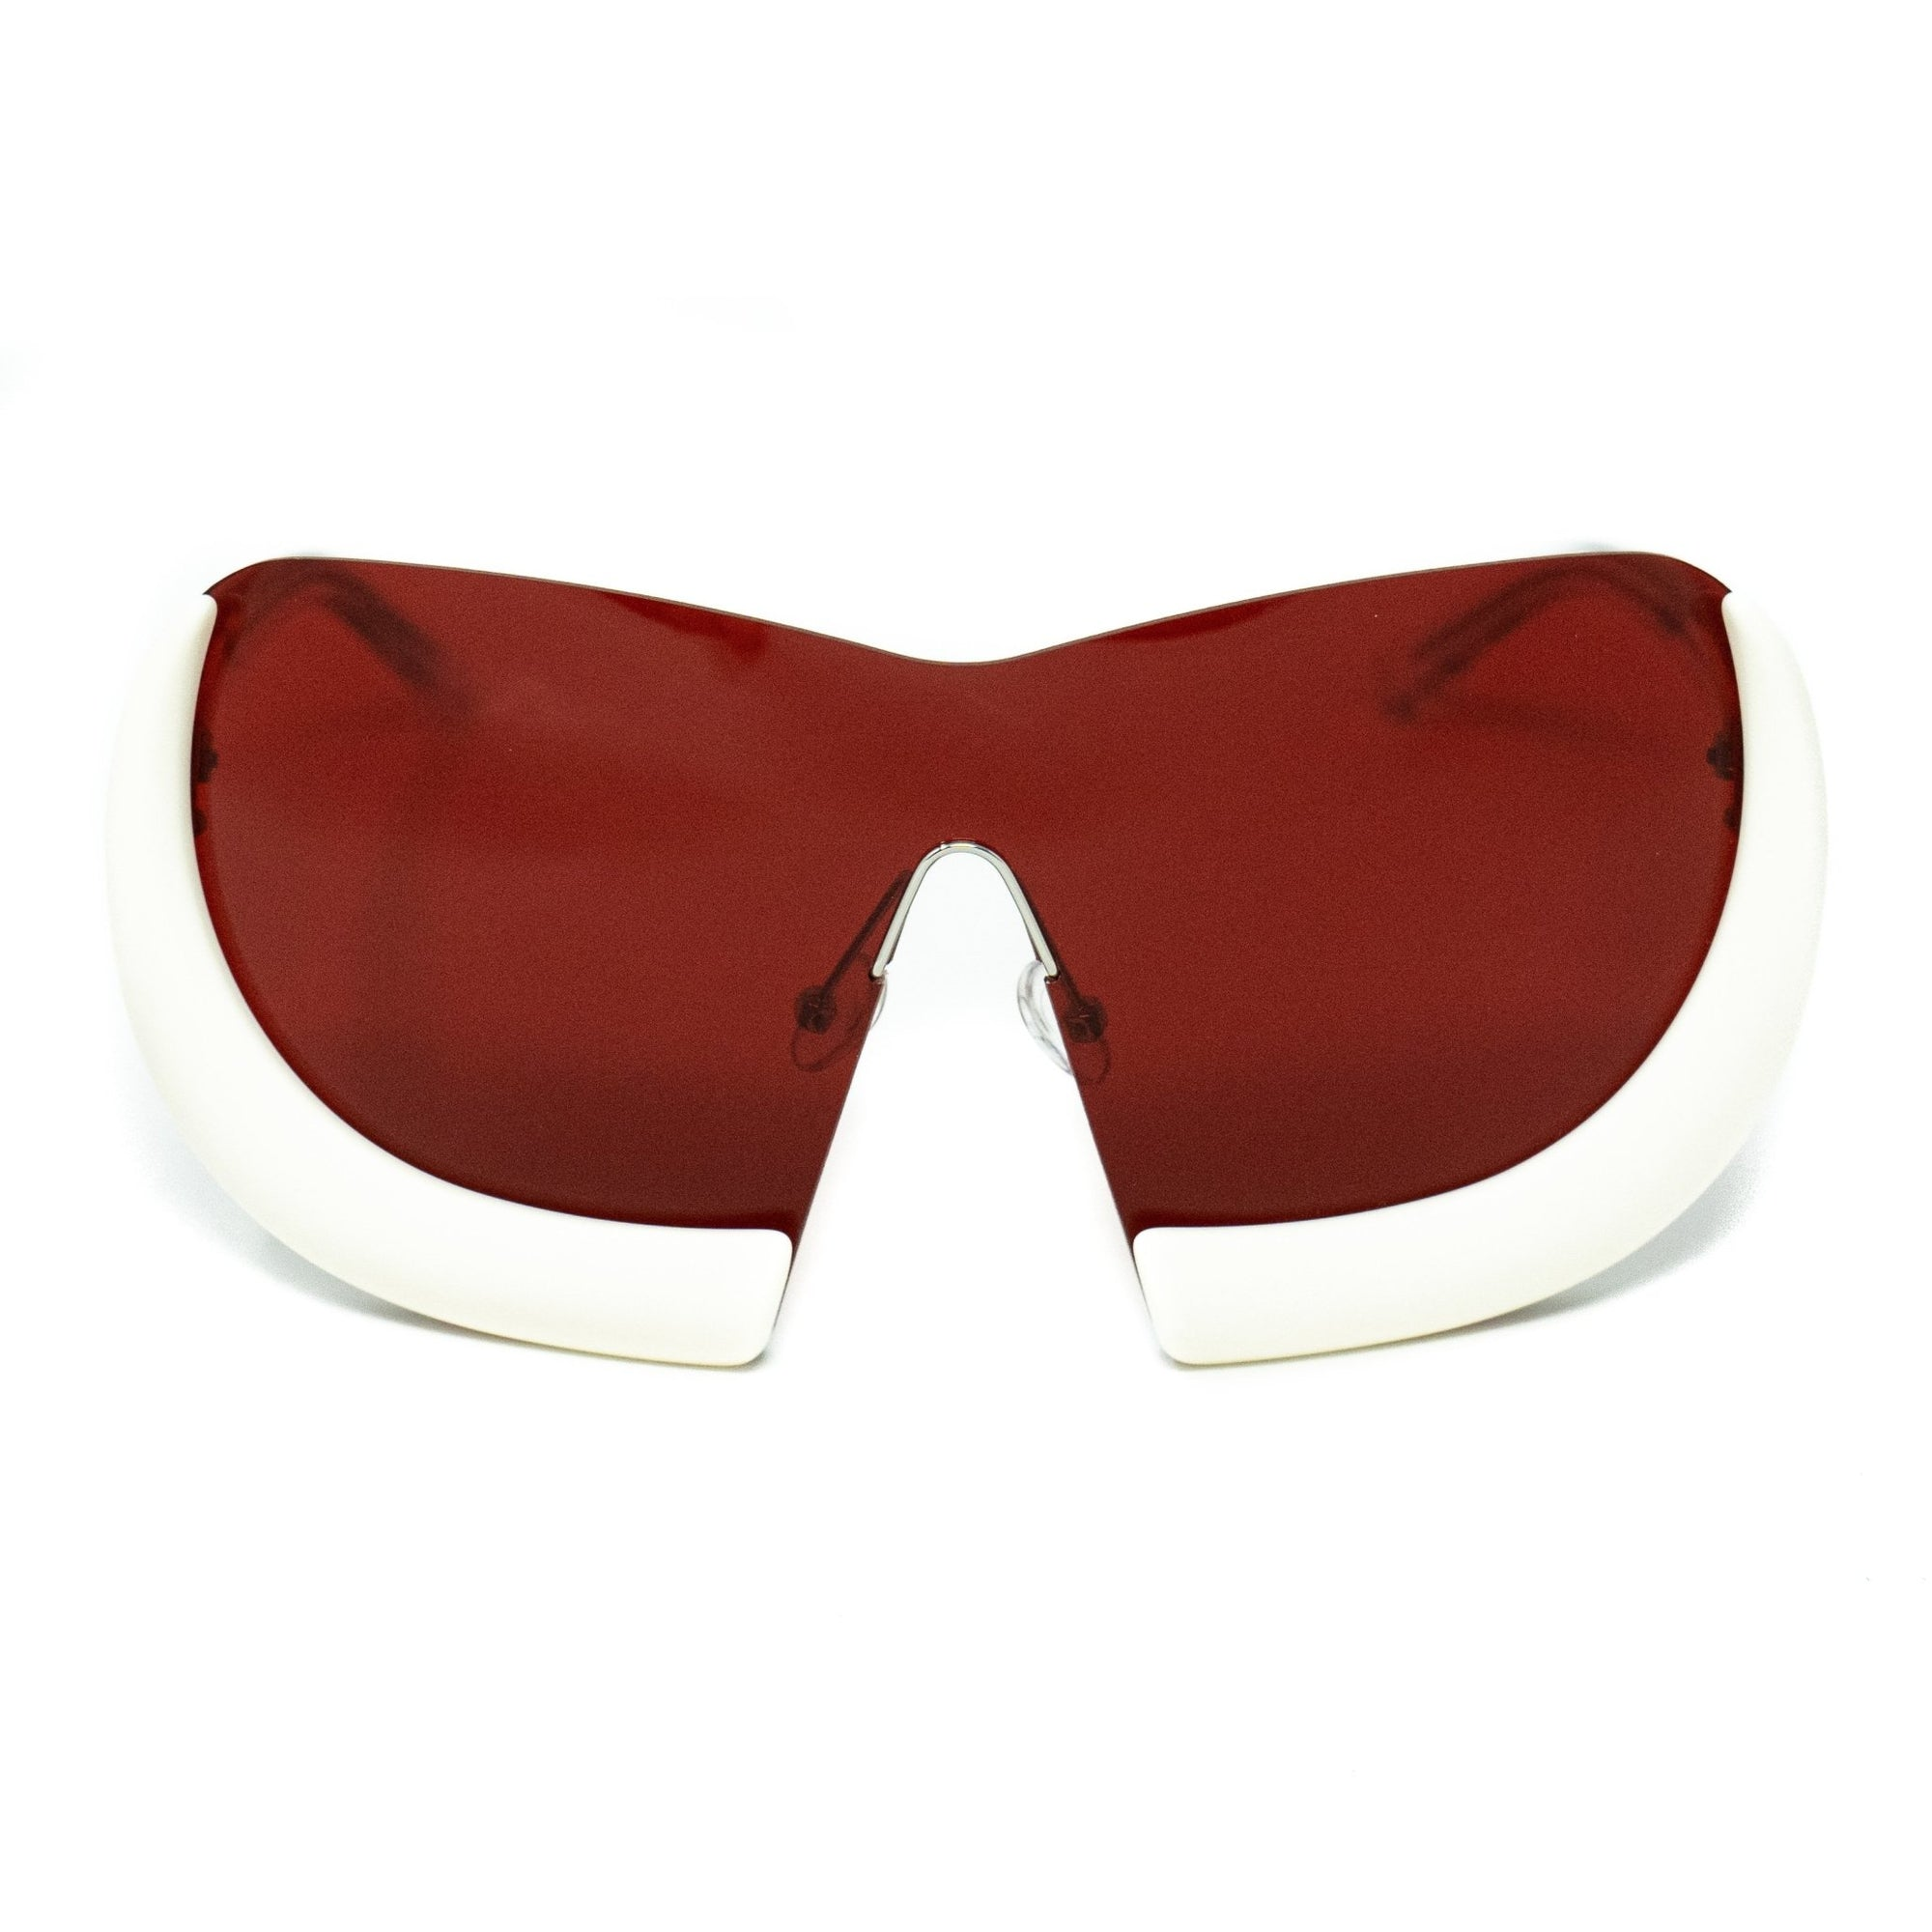 Walter Van Beirendonck Sunglasses Special Shield Frame with Red Lenses - WVB6C1SUN - Watches & Crystals